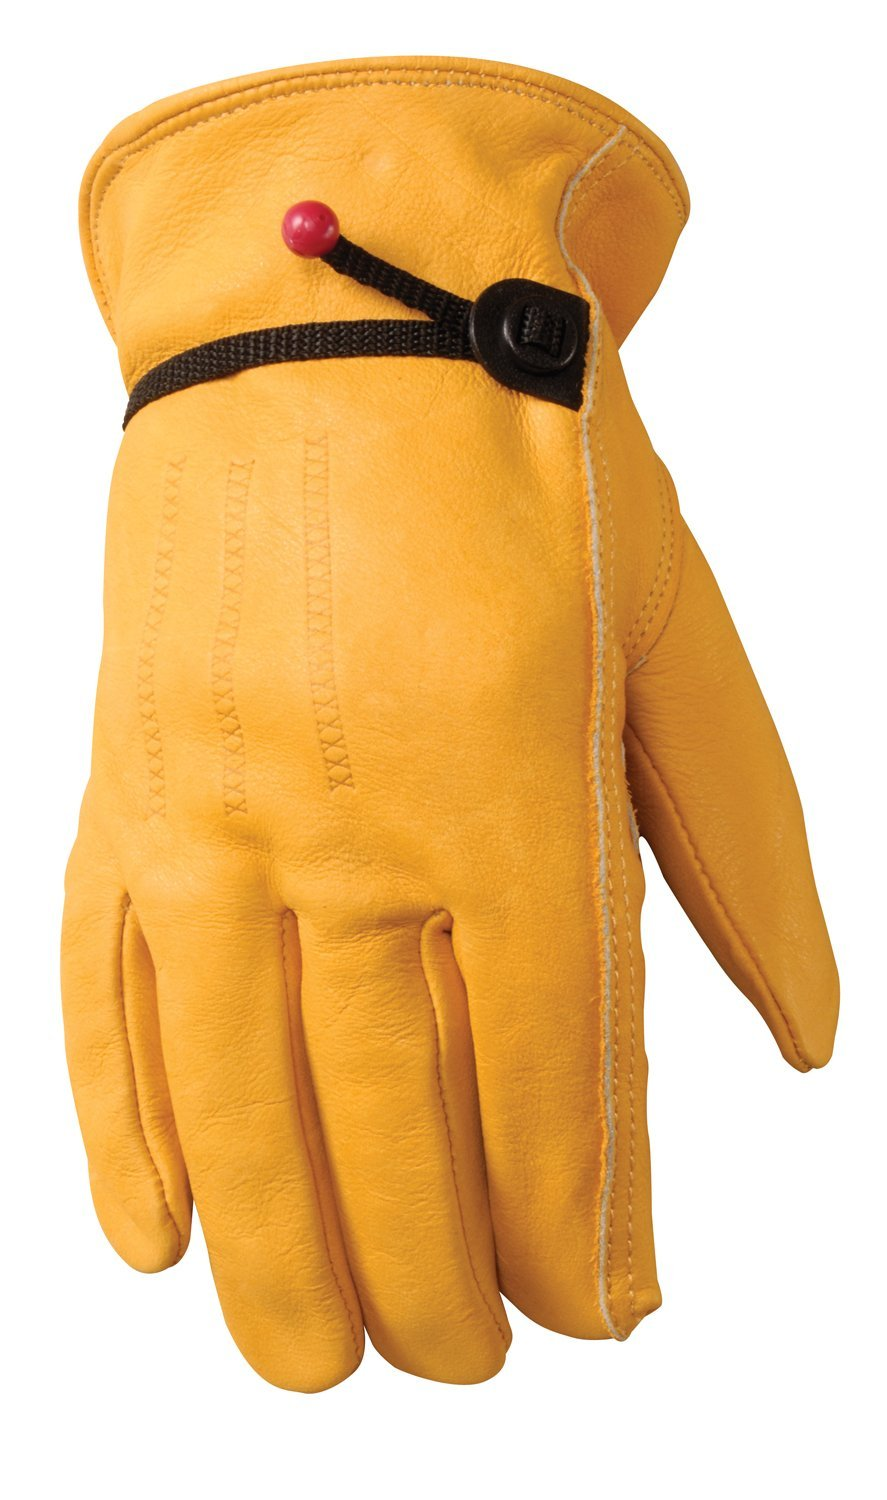 Driving gloves debenhams - Leather Work Gloves Xl 10 Best Work Gloves For Engineers And Professionals